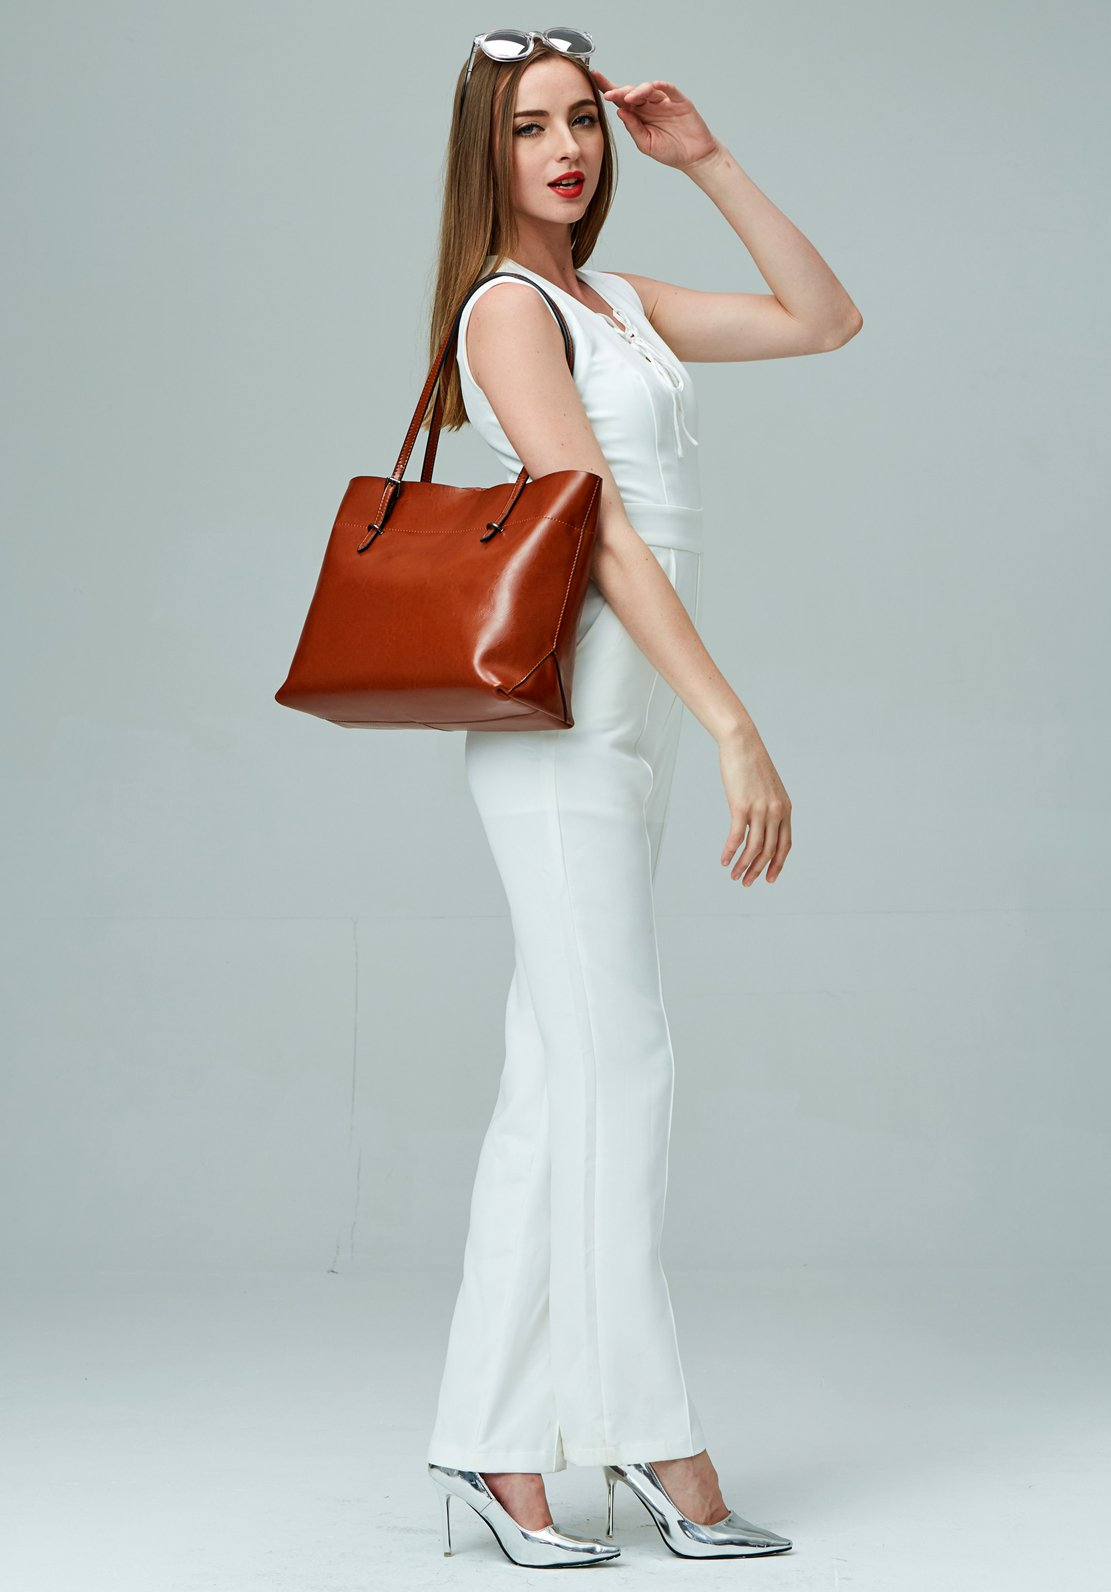 Covelin Women's Handbag Genuine Leather Tote Shoulder Bags Soft Hot Brown by Covelin (Image #7)